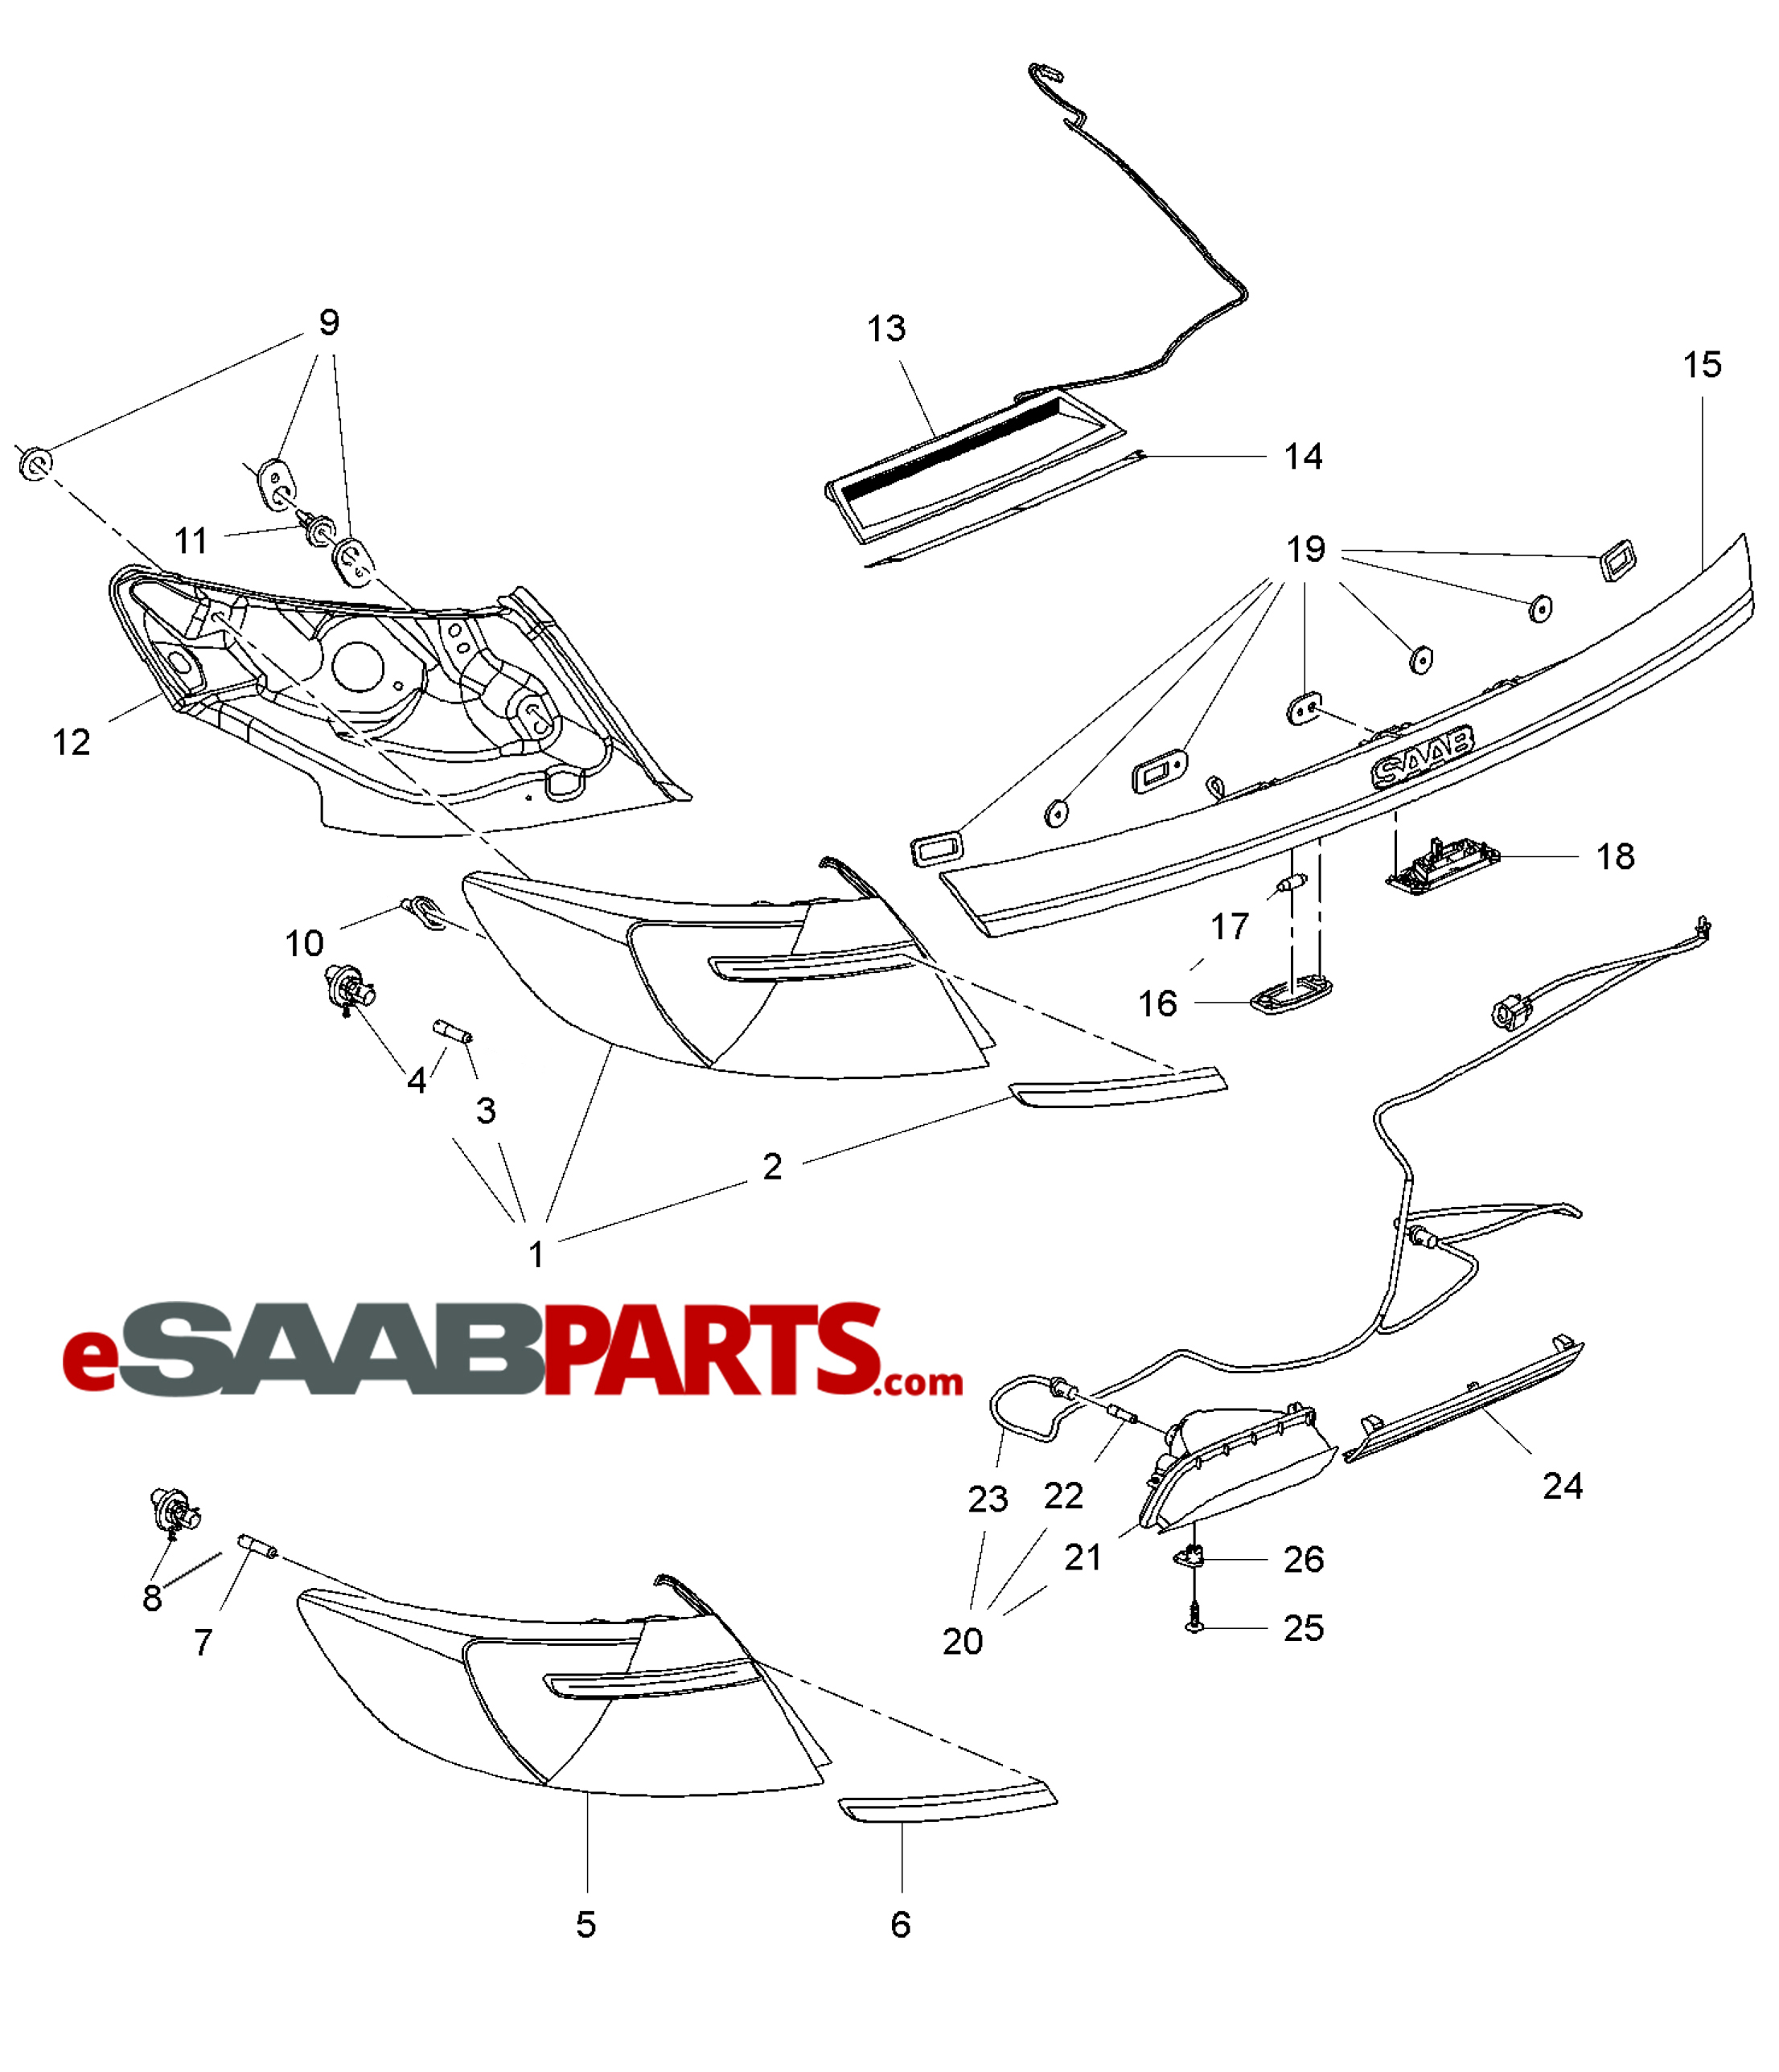 honda odyssey exhaust system diagram lotus in water plant ford f engine auto wiring the saab v